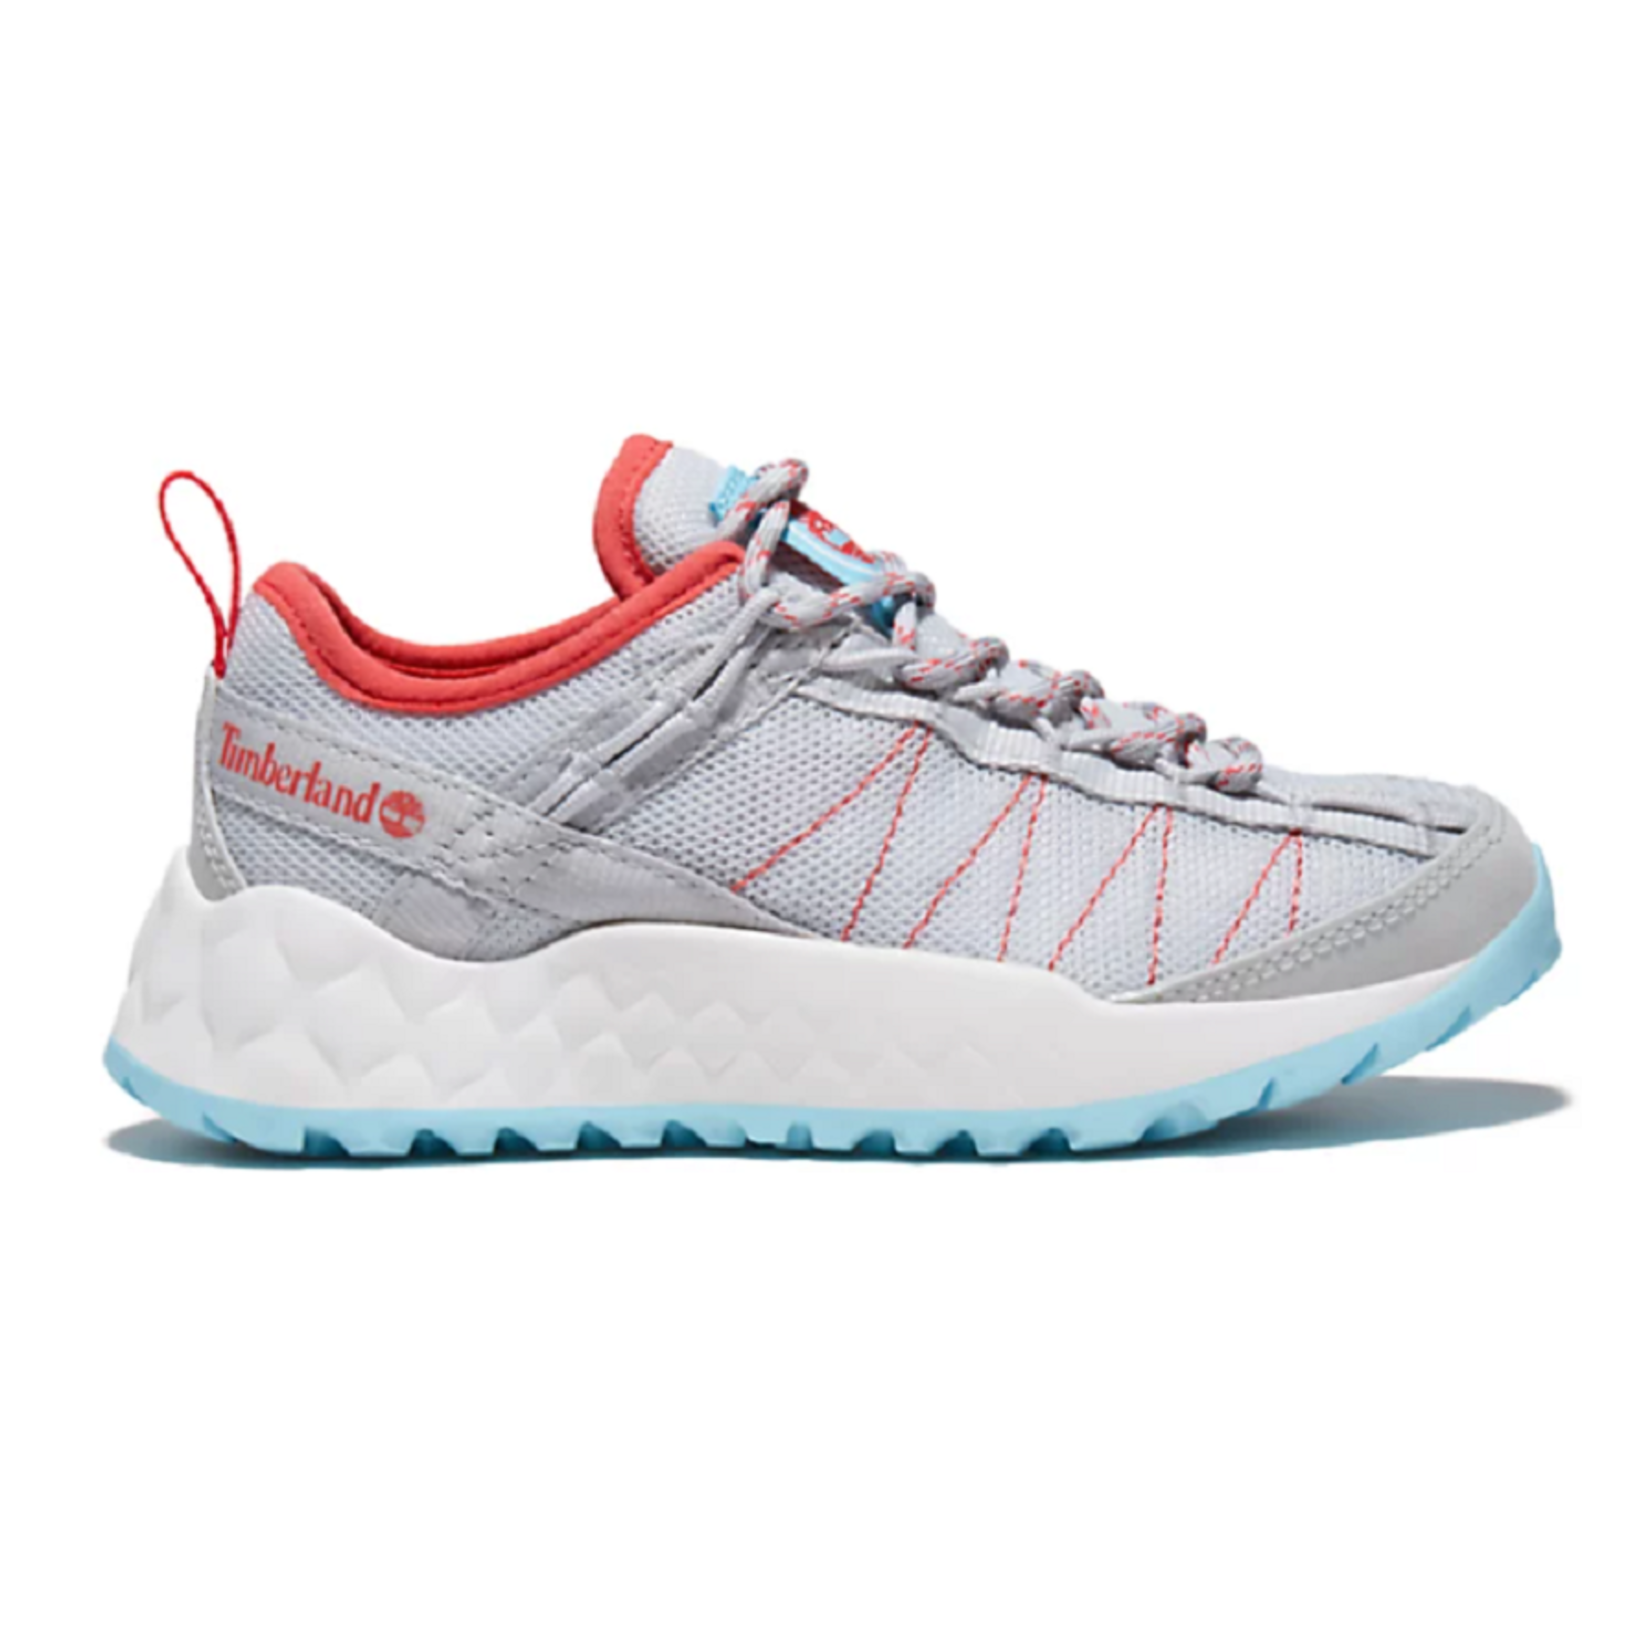 Timberland SOLAR WAVE HIKER FOR KIDS IN LIGHT GREY